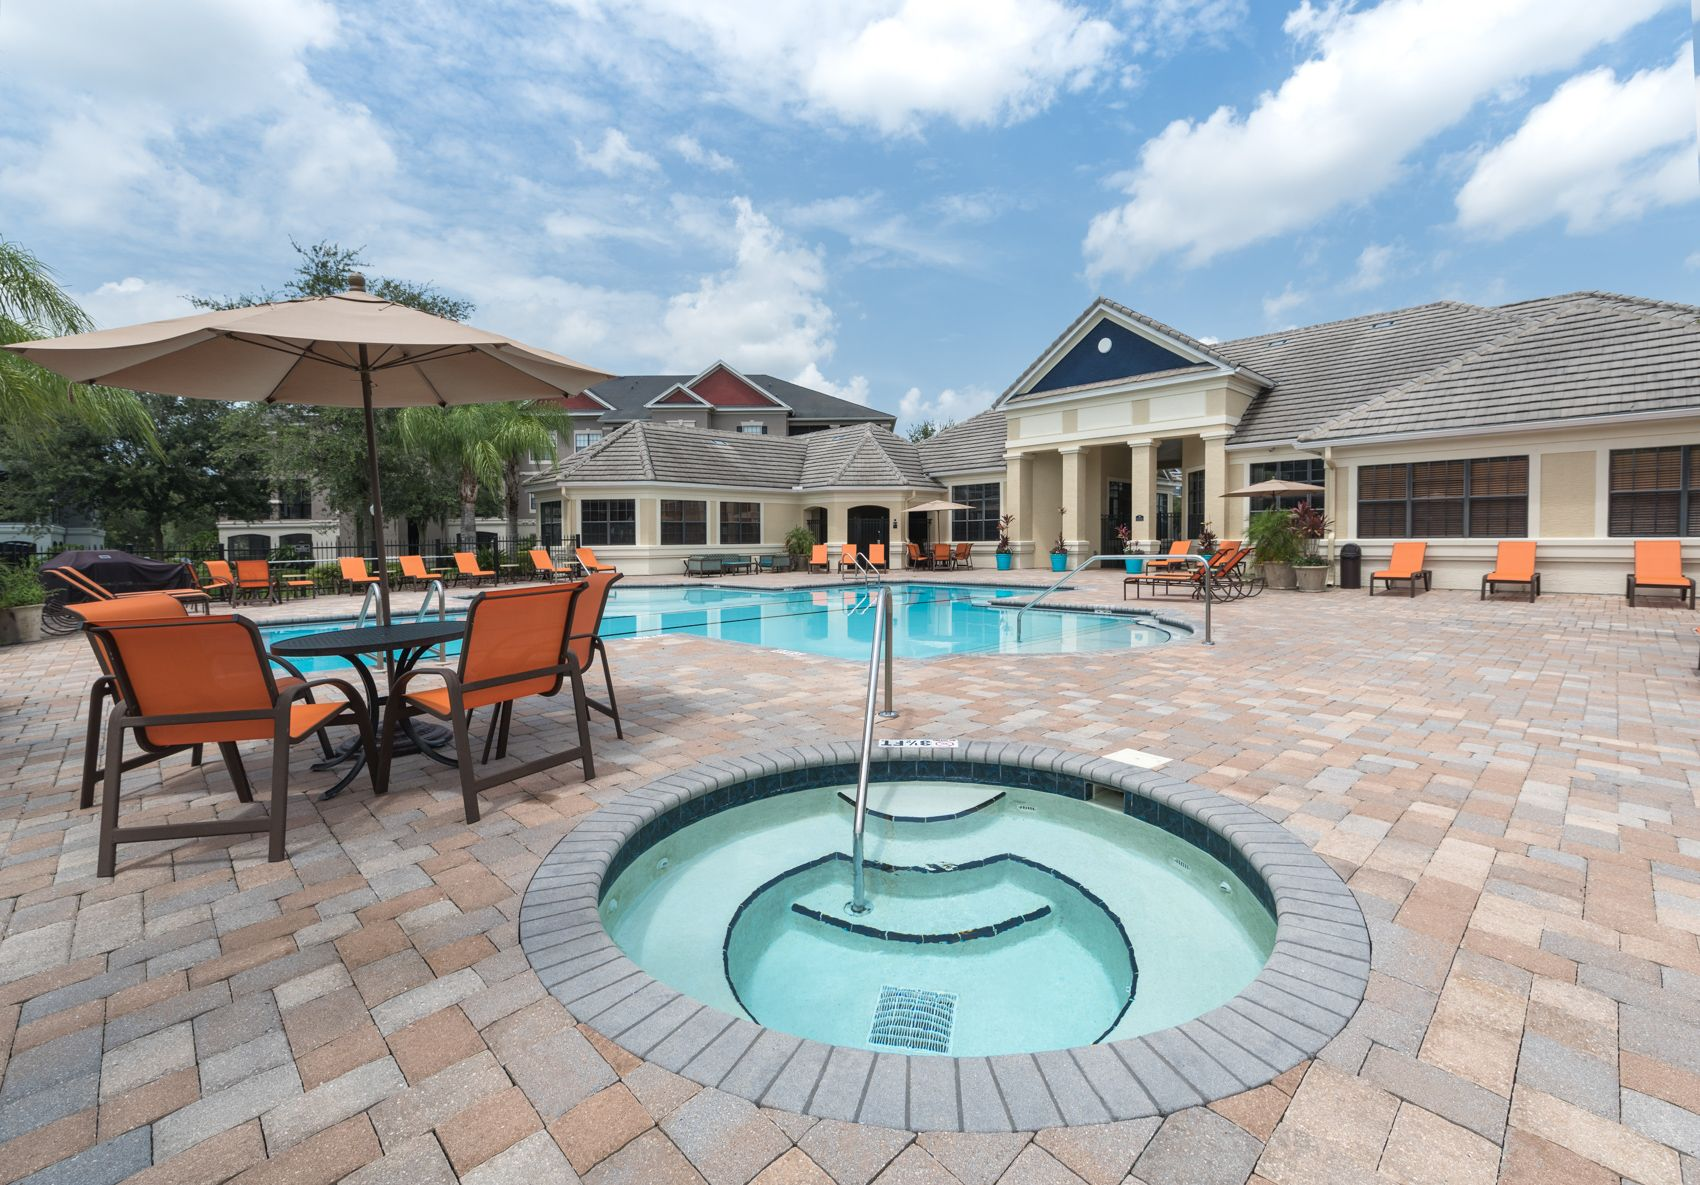 hot tub and outdoor table near pool